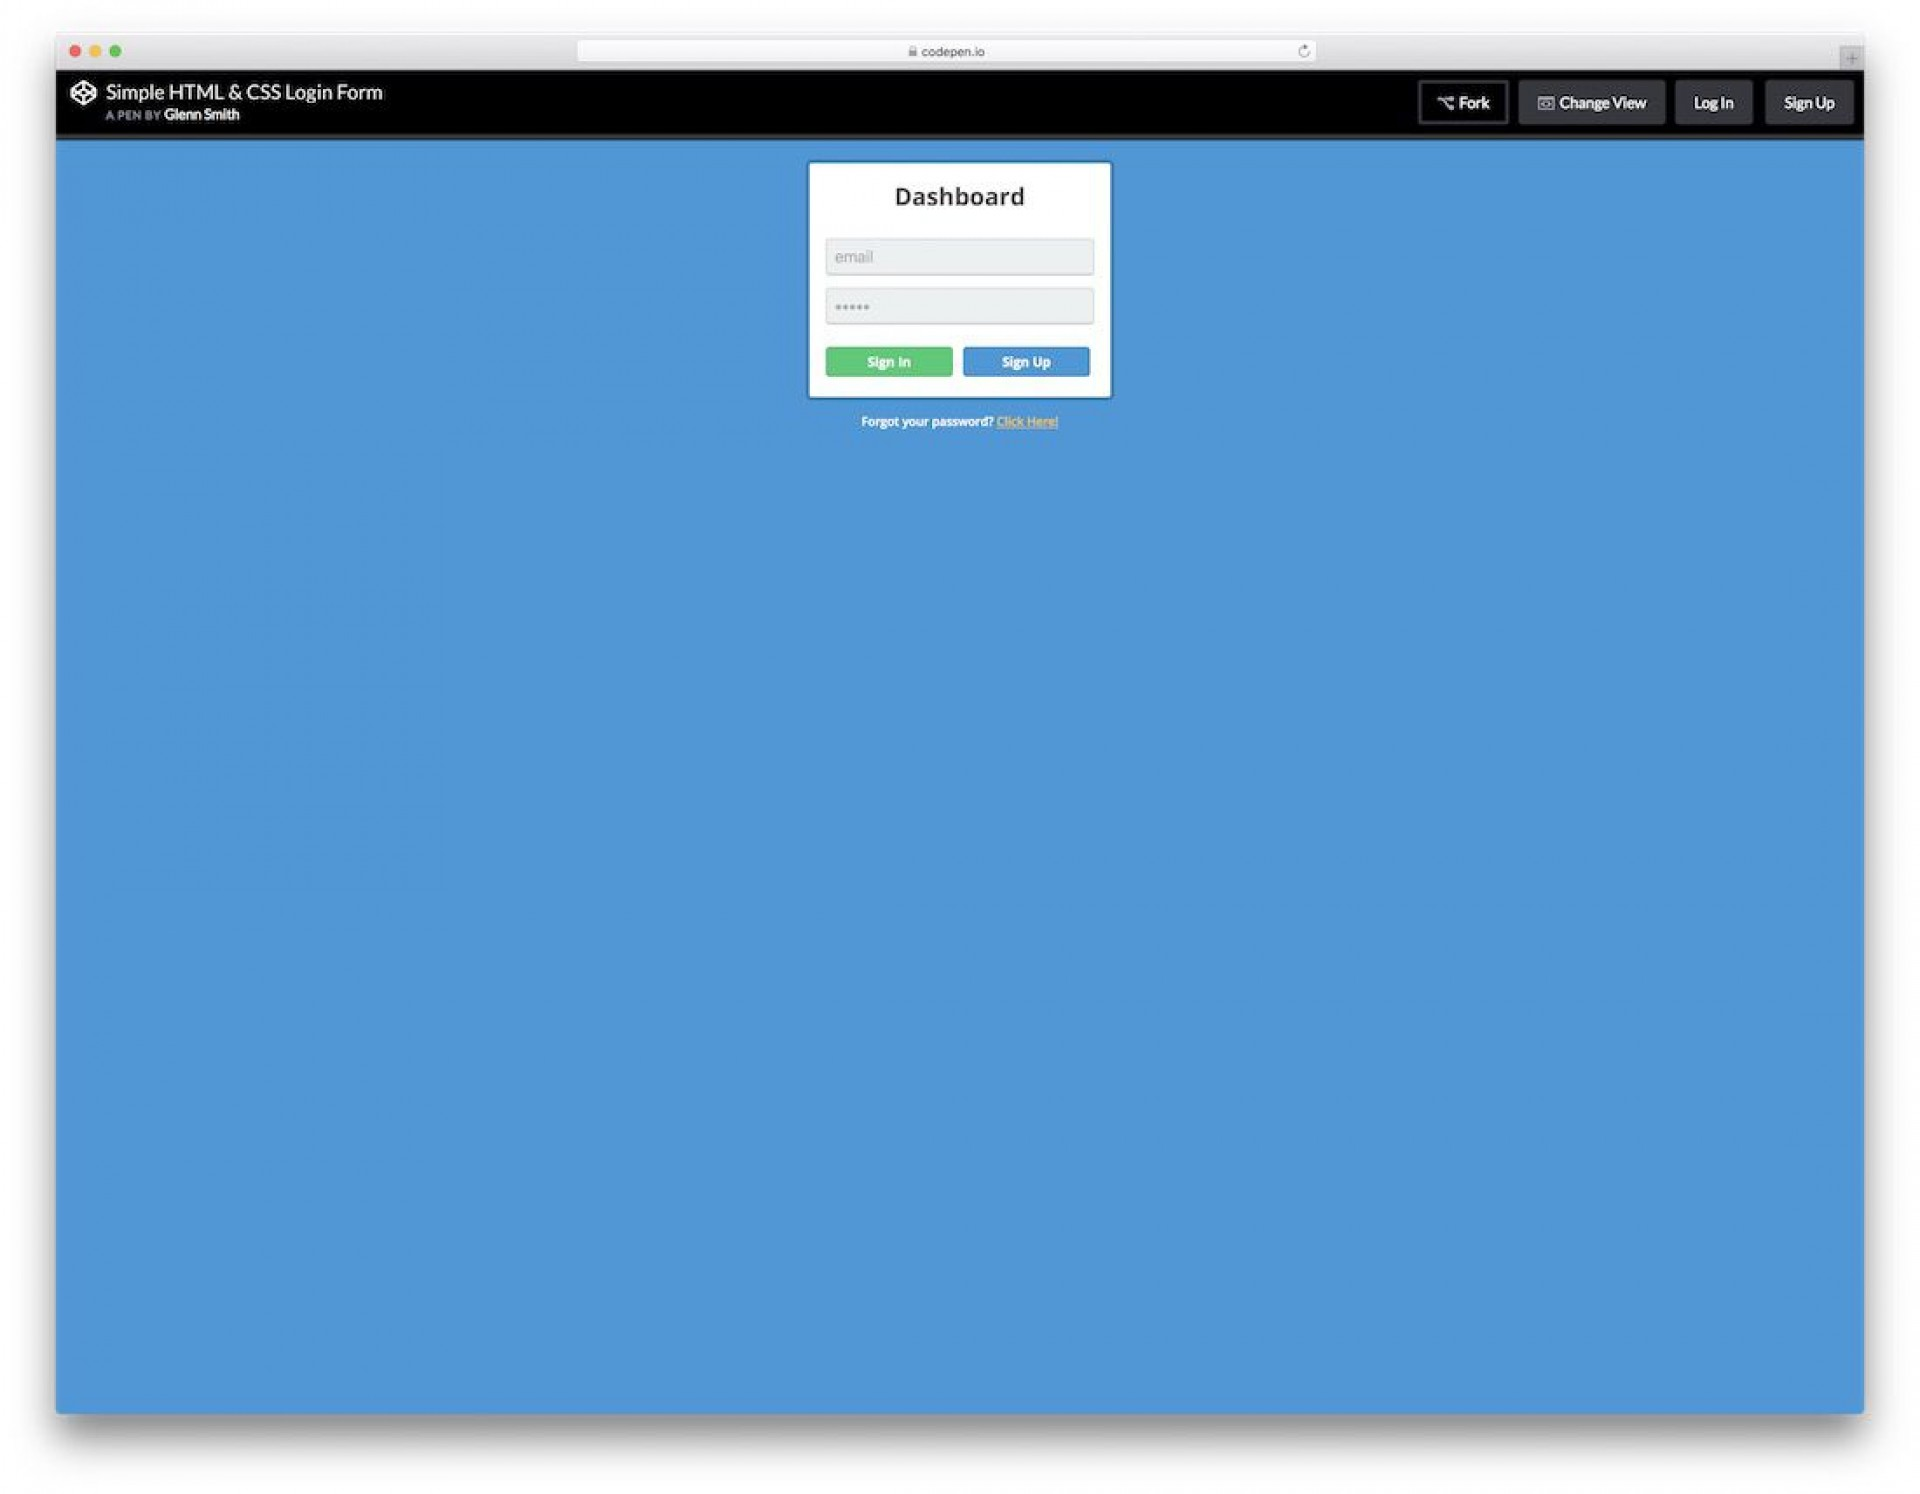 000 Phenomenal Html Login Page Template Concept  Download Without Cs Bootstrap 41920